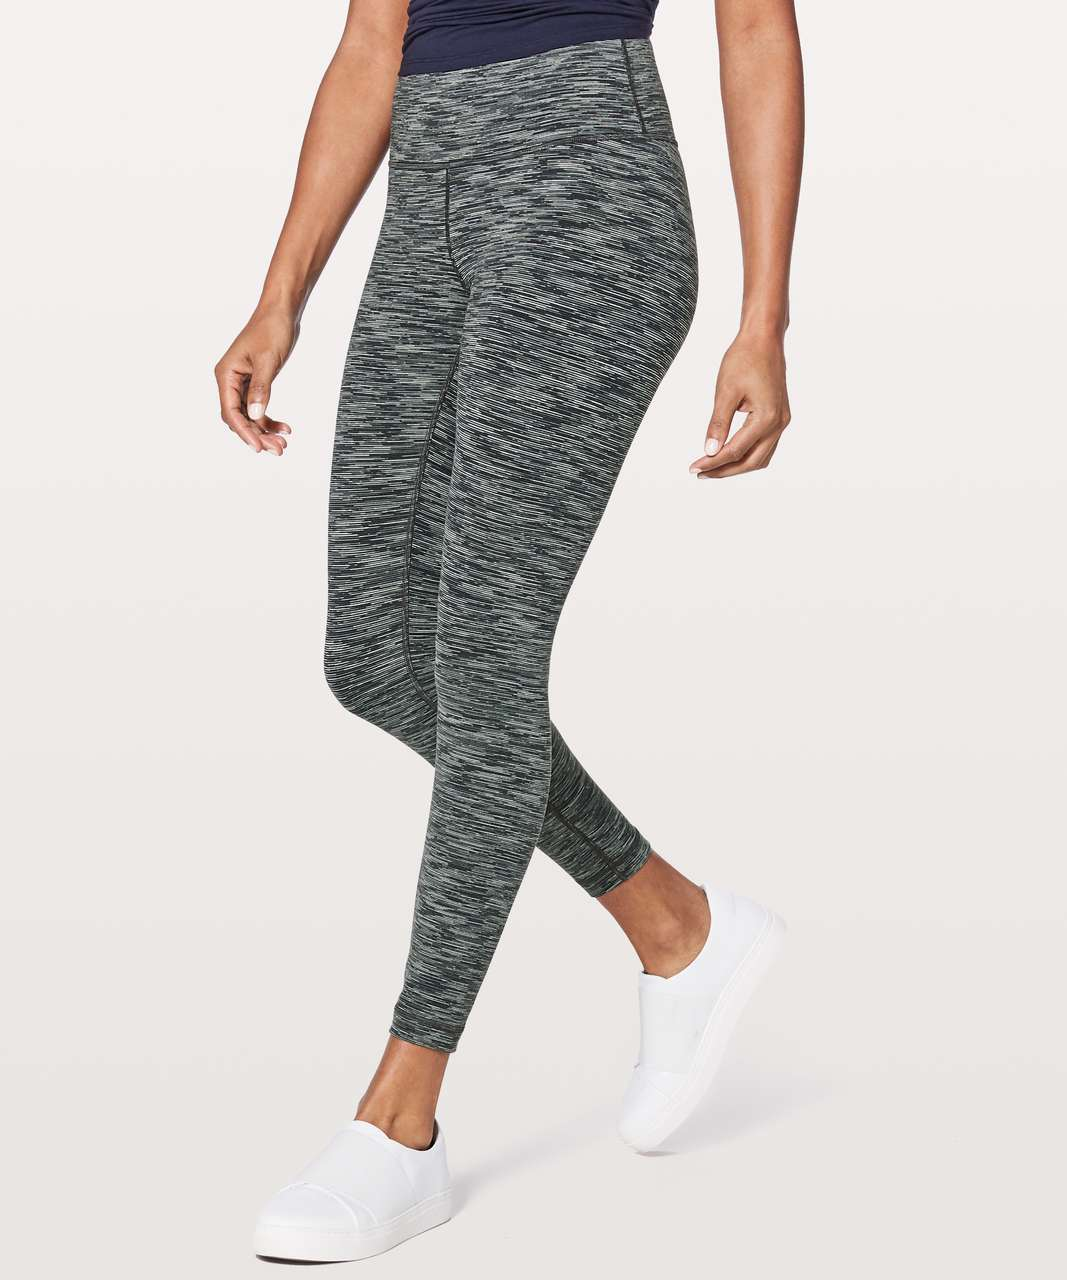 "Lululemon Wunder Under Hi-Rise 7/8 Tight *25"" - Wee Are From Space Black Slate"